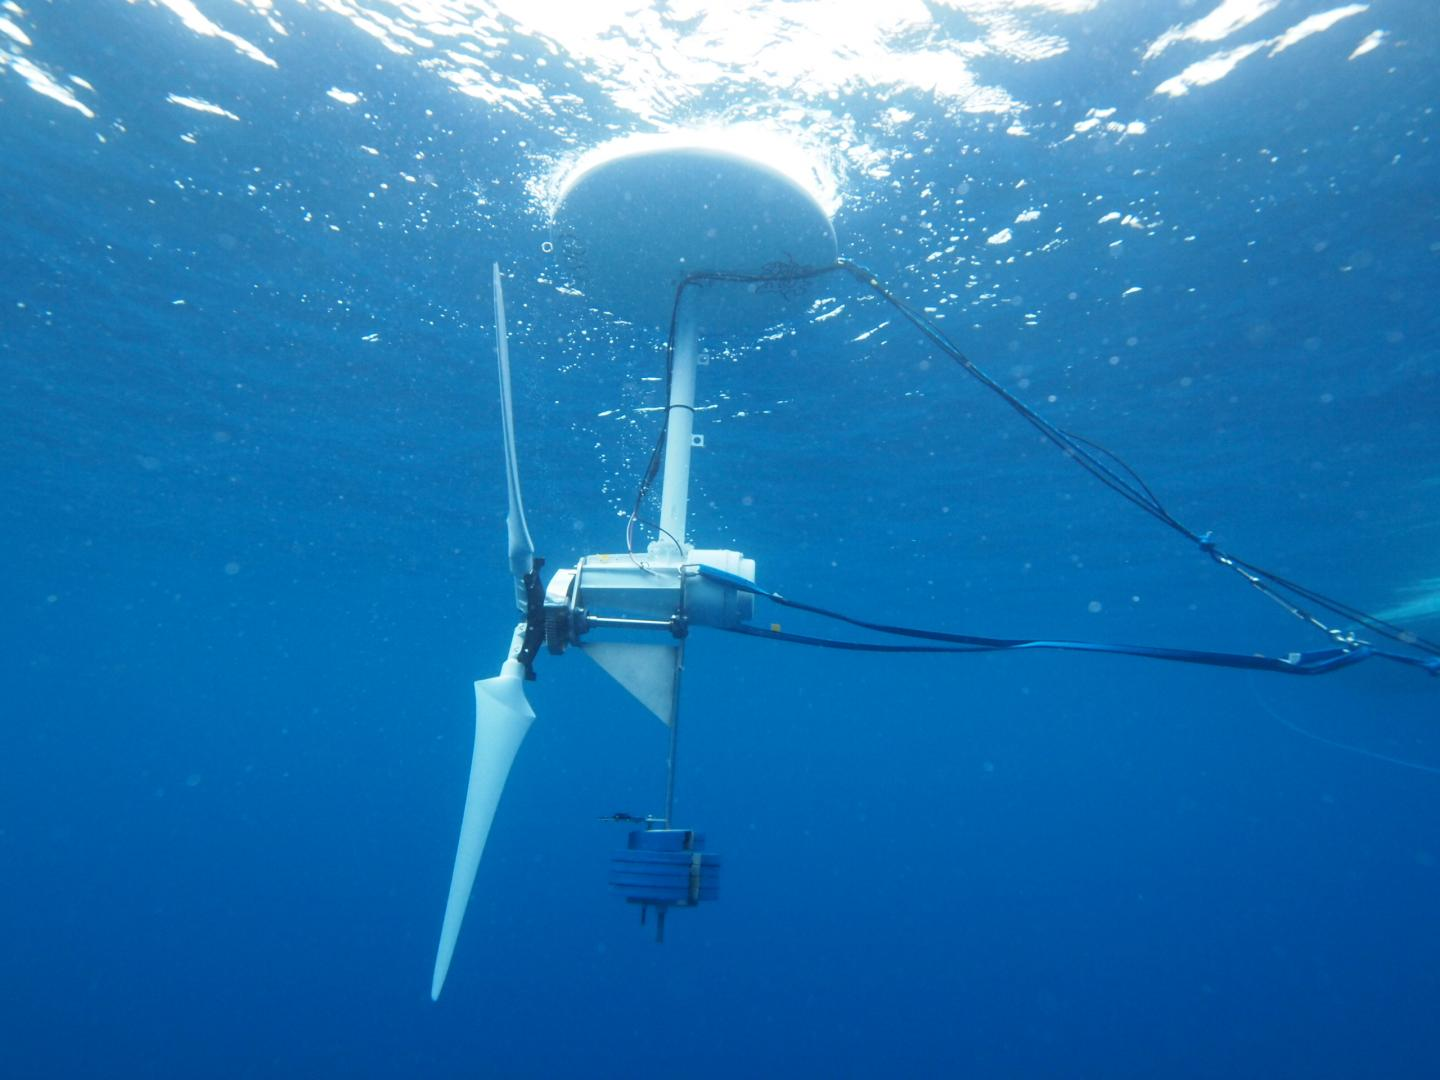 Taming Oceans For 24 7 Power